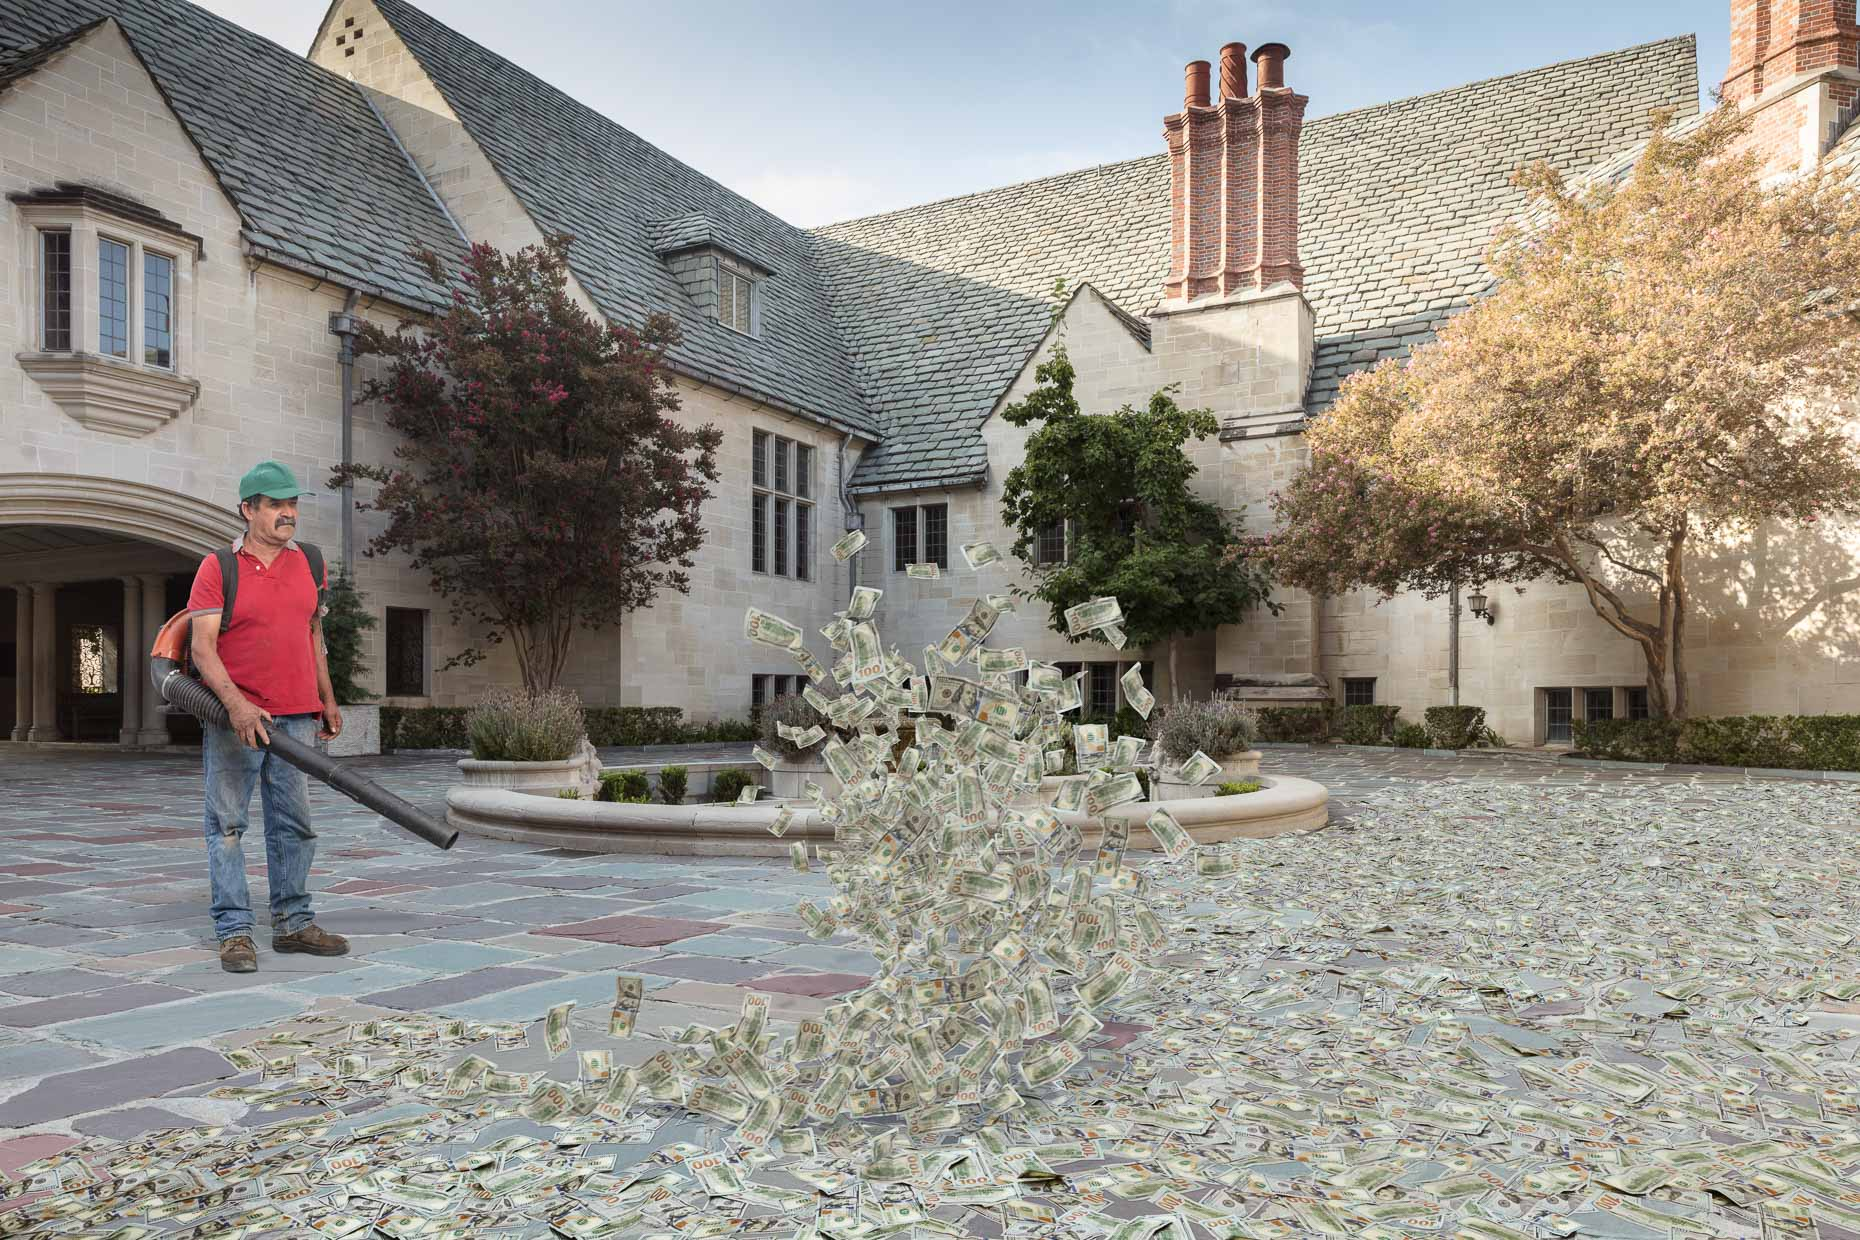 Gardener using leaf blower on hundred dollar bills on ground in courtyard of mansion.